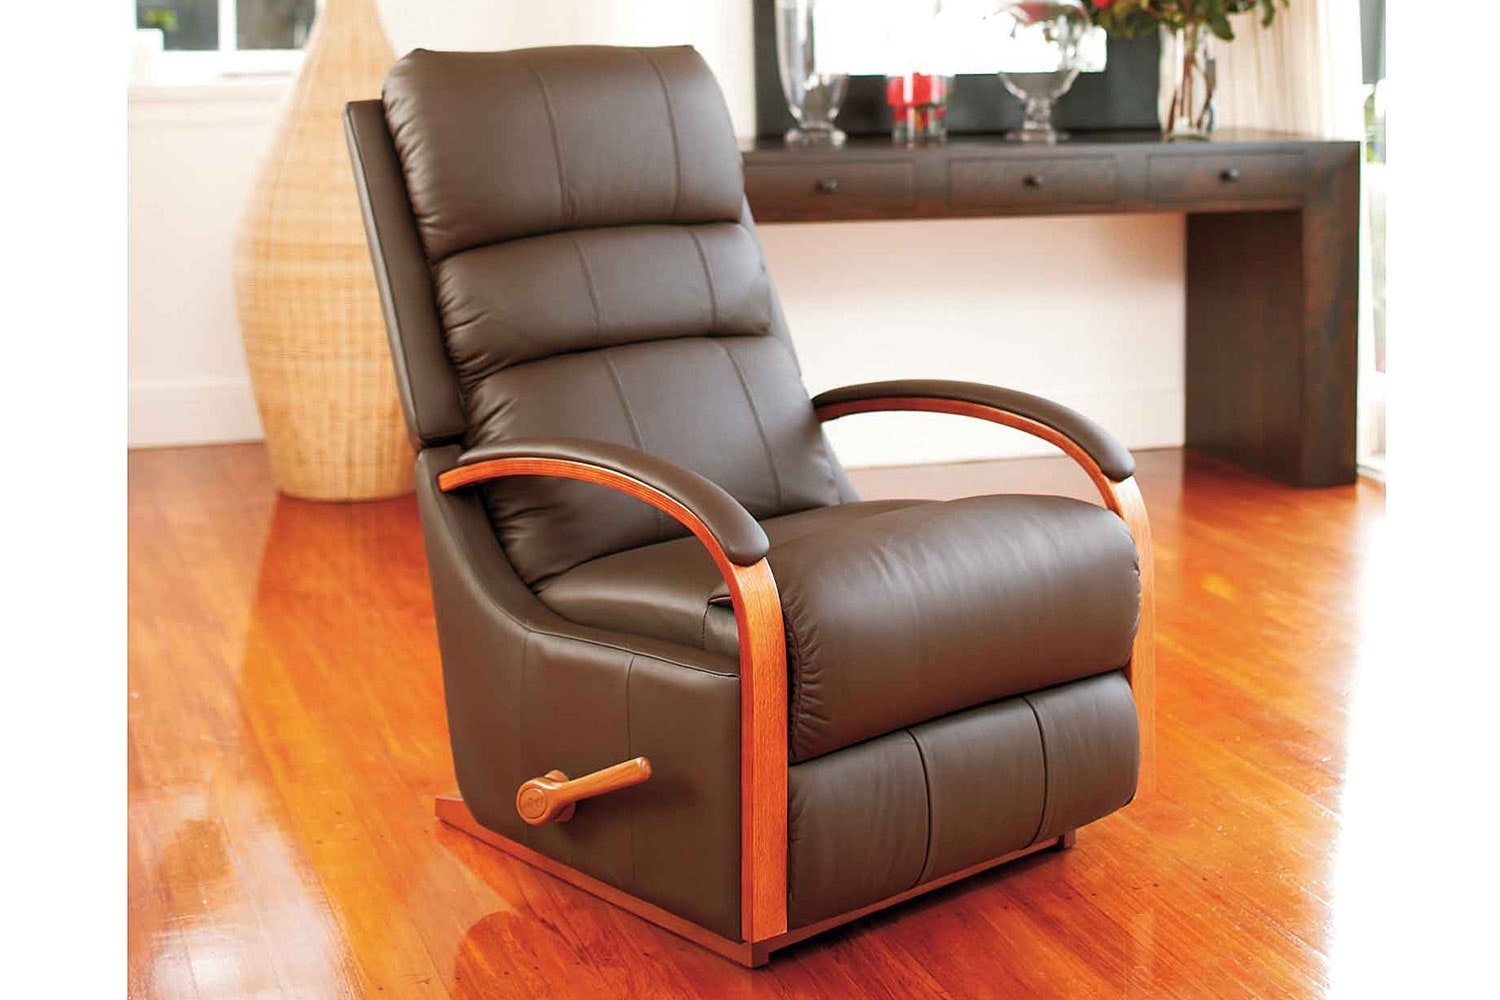 Charleston Leather La-Z-Boy Recliner Chair  sc 1 st  Harvey Norman : la z boy recliner chair - islam-shia.org